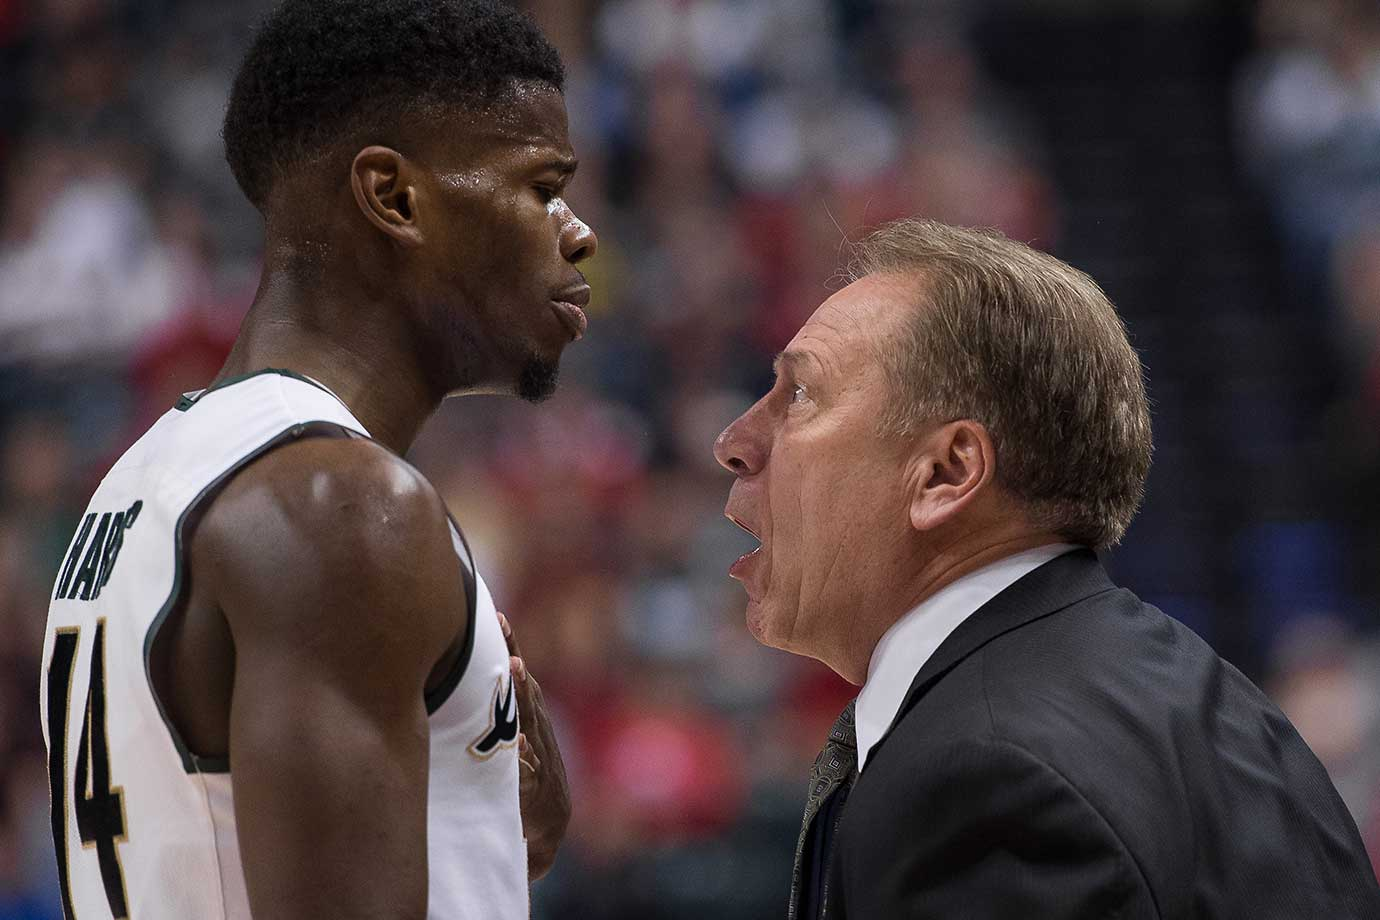 Michigan State Spartans head coach Tom Izzo gets in the face of guard Eron Harris.